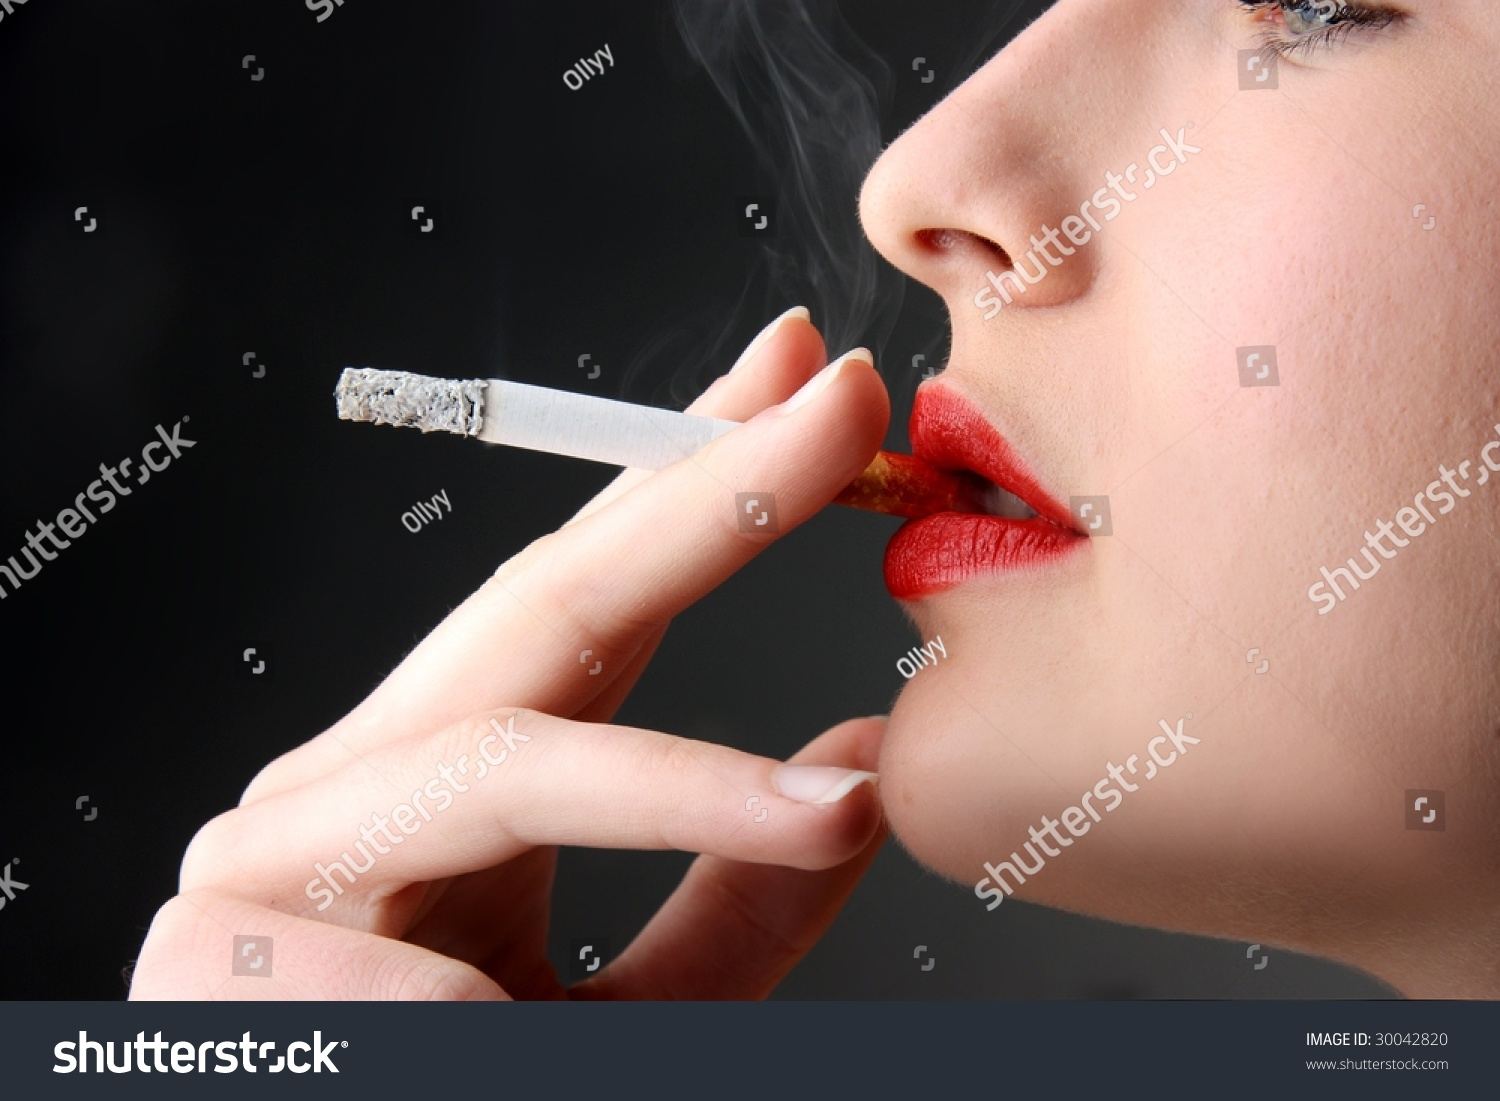 women smoking closeup actress - photo #33